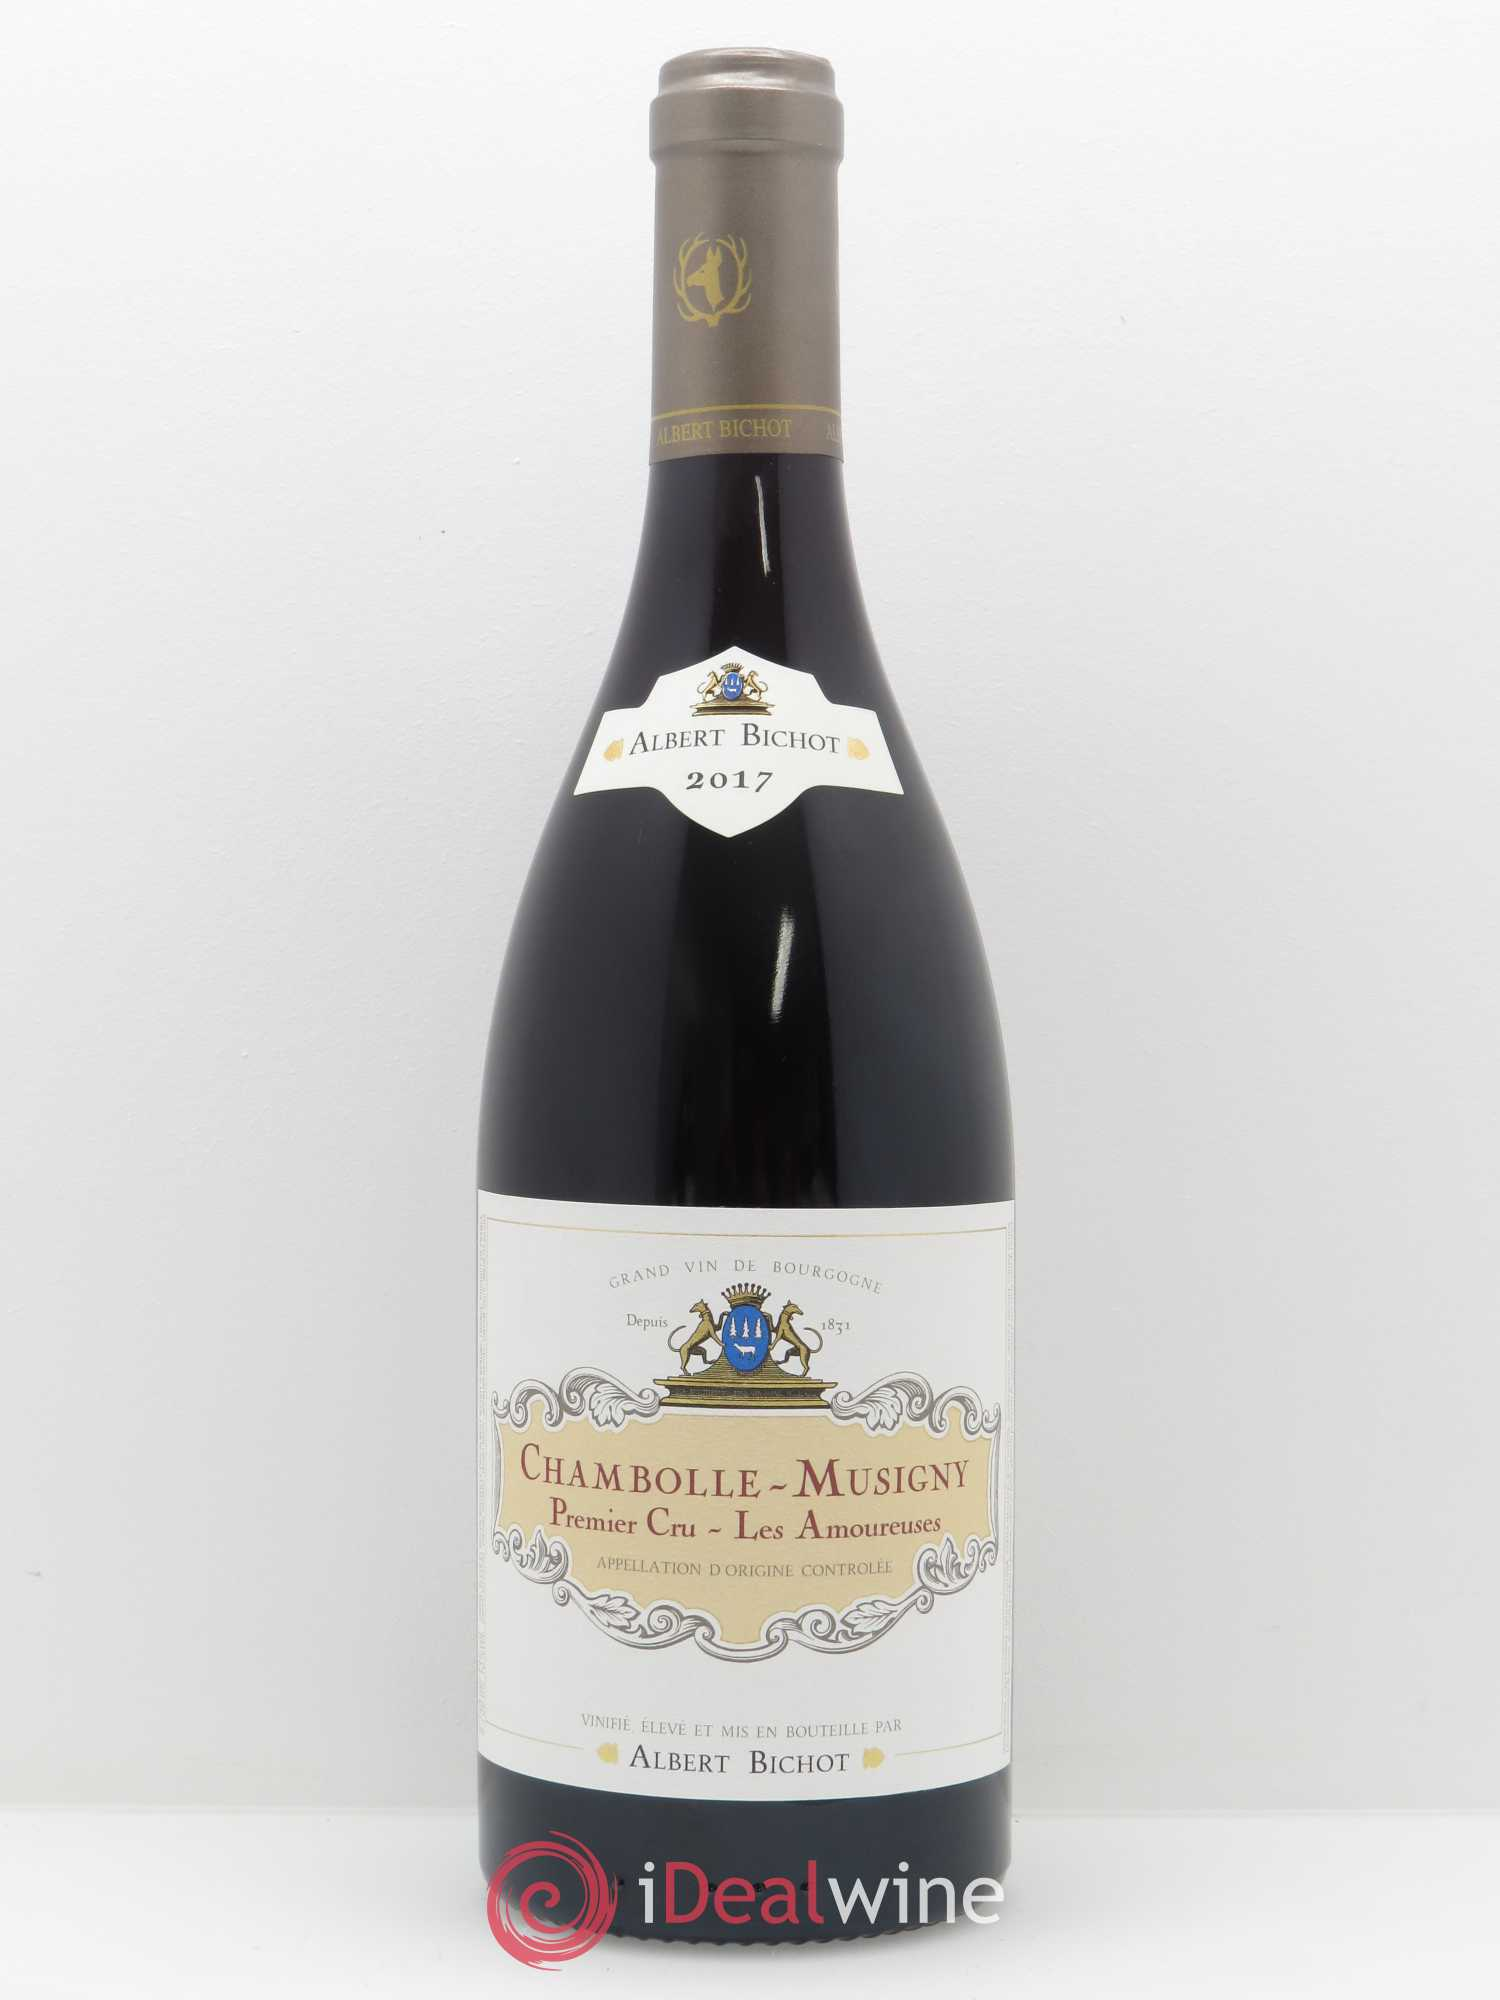 Chambolle-Musigny 1er Cru Les Amoureuses Albert Bichot